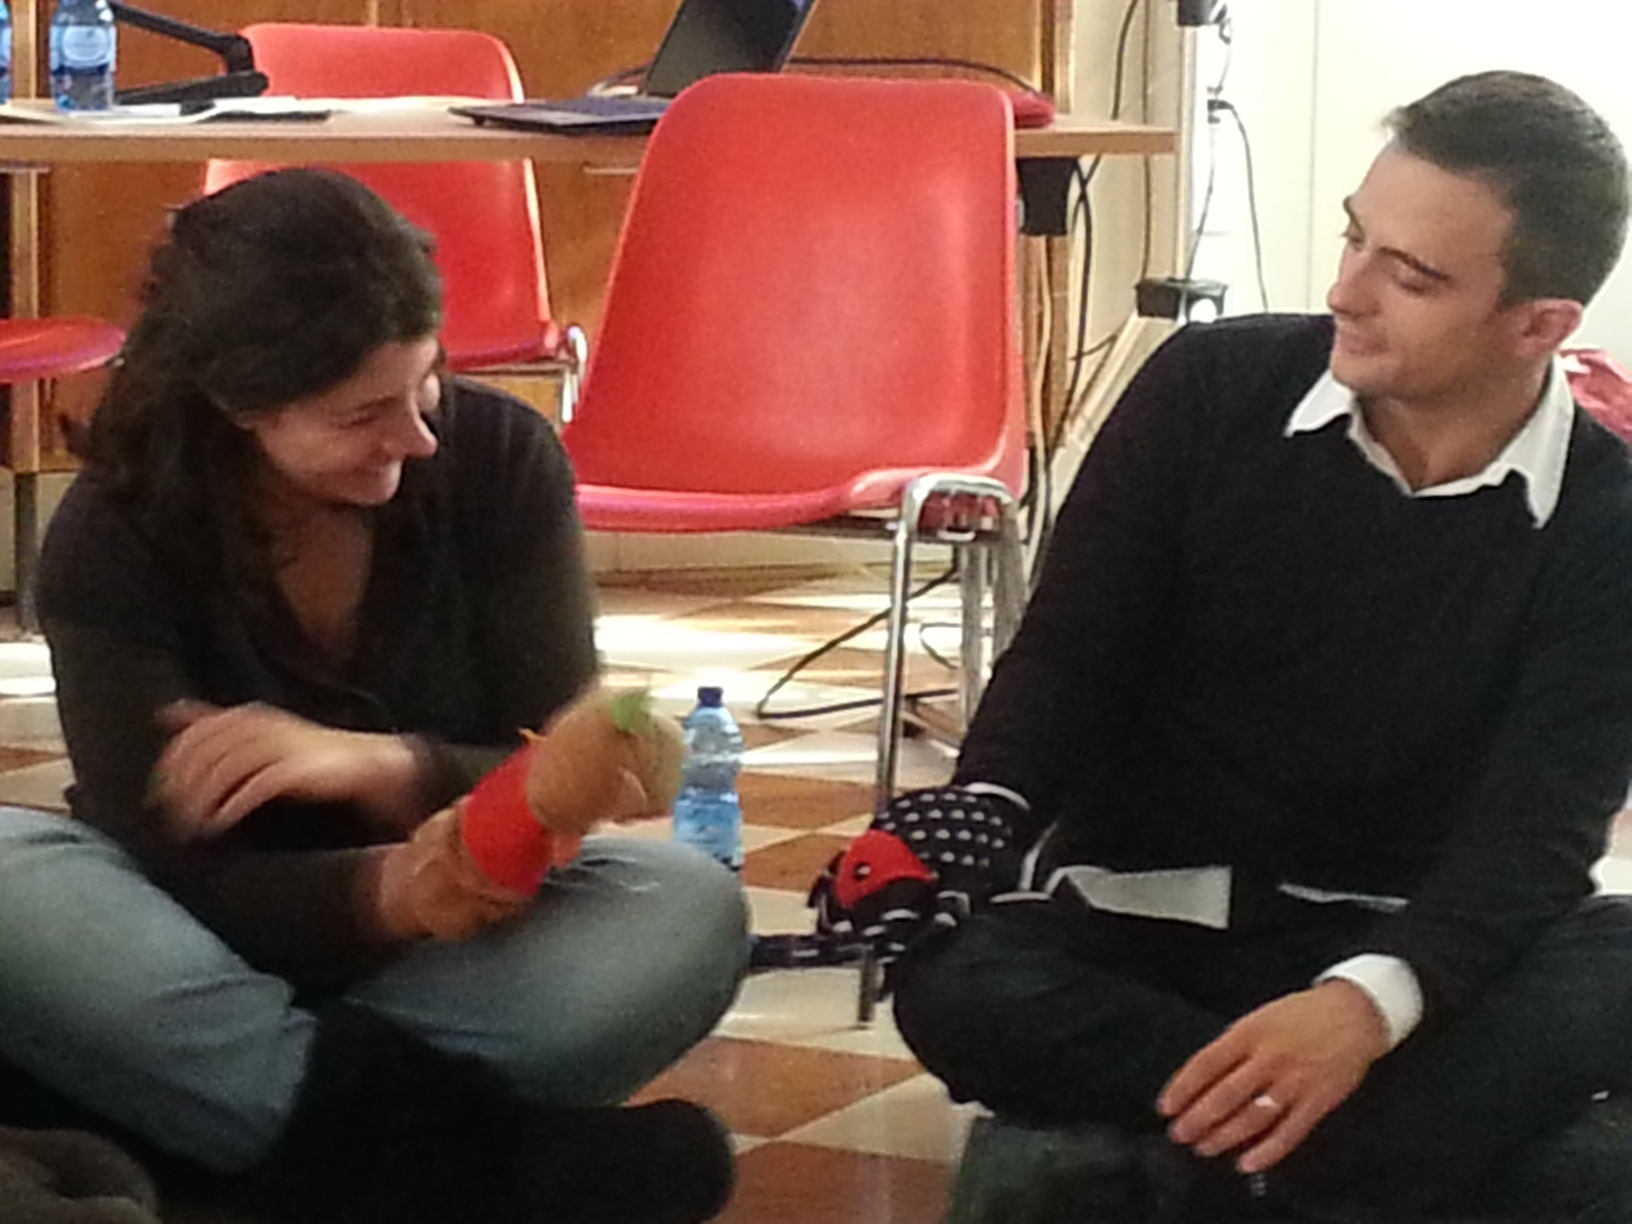 gestalt play therapy venezia 13 14 training giandomenico bagatin psicologia psicoterapia bambini